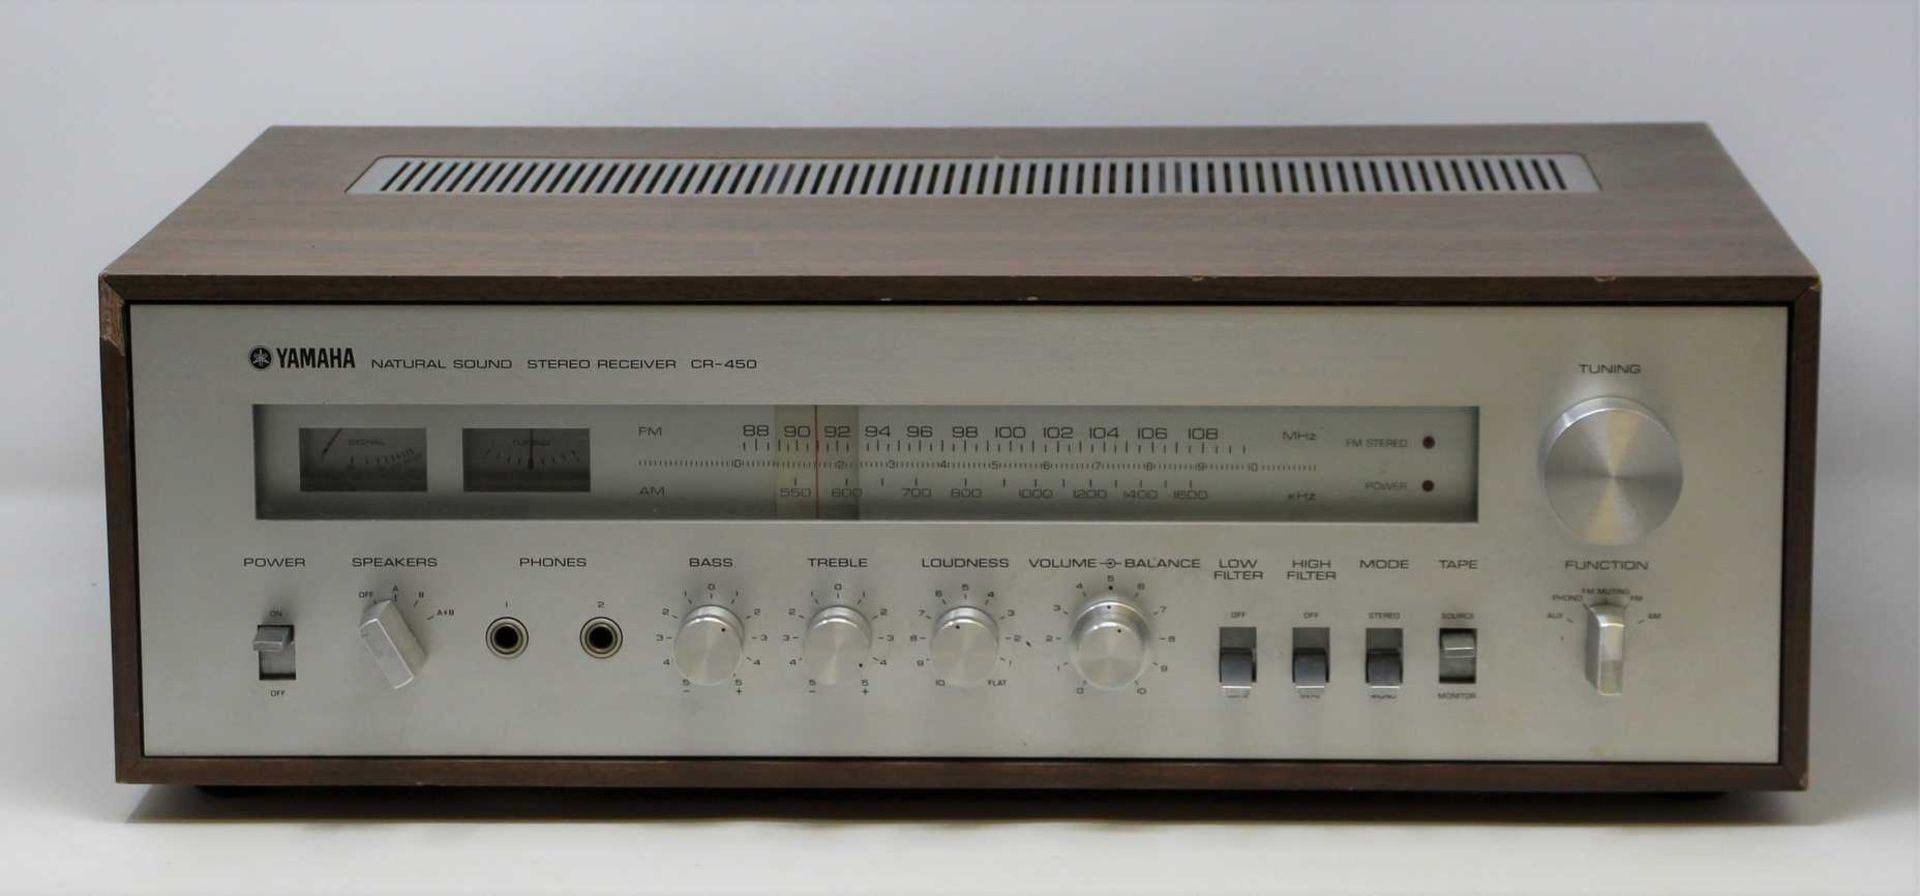 COLLECTION ONLY: A pre-owned vintage Yamaha CR-450 Natural Sound Stereo Recover (Some damage to